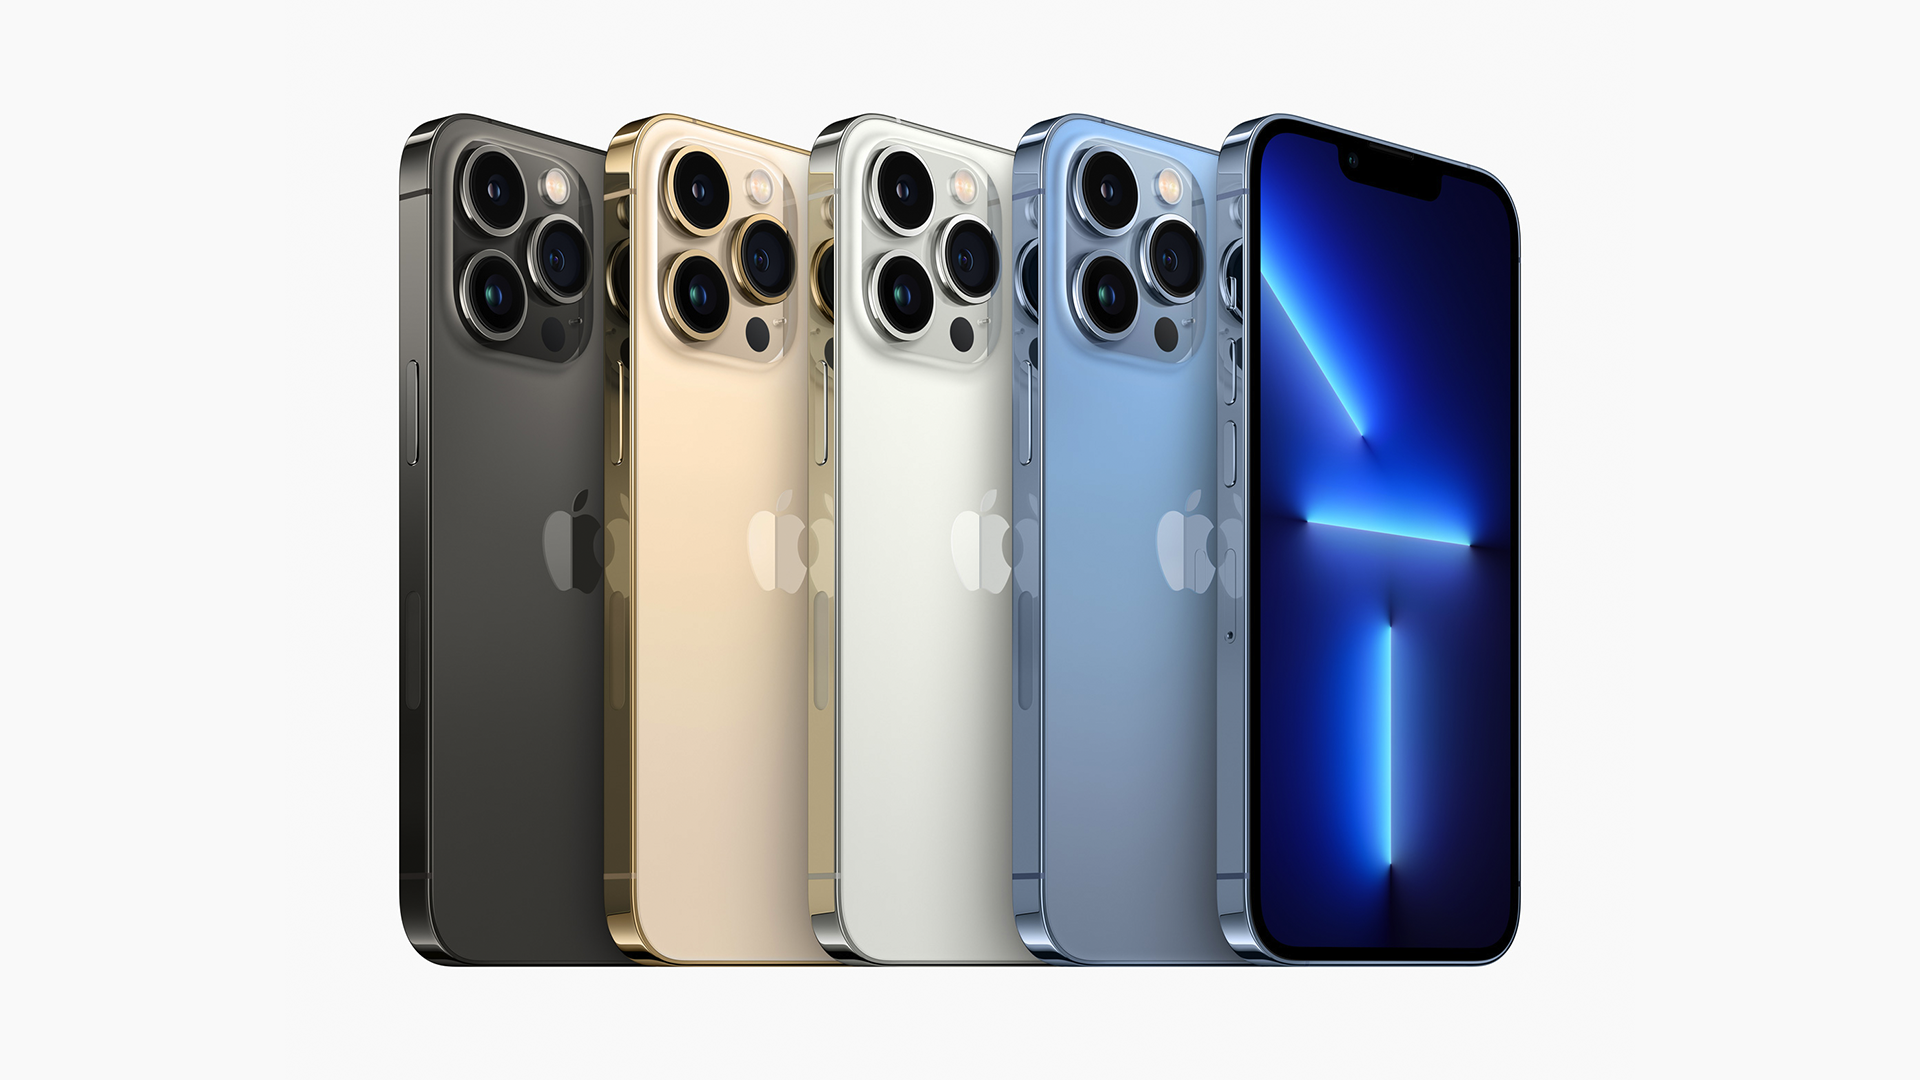 The full iPhone 13 Pro and Pro Max lineup.